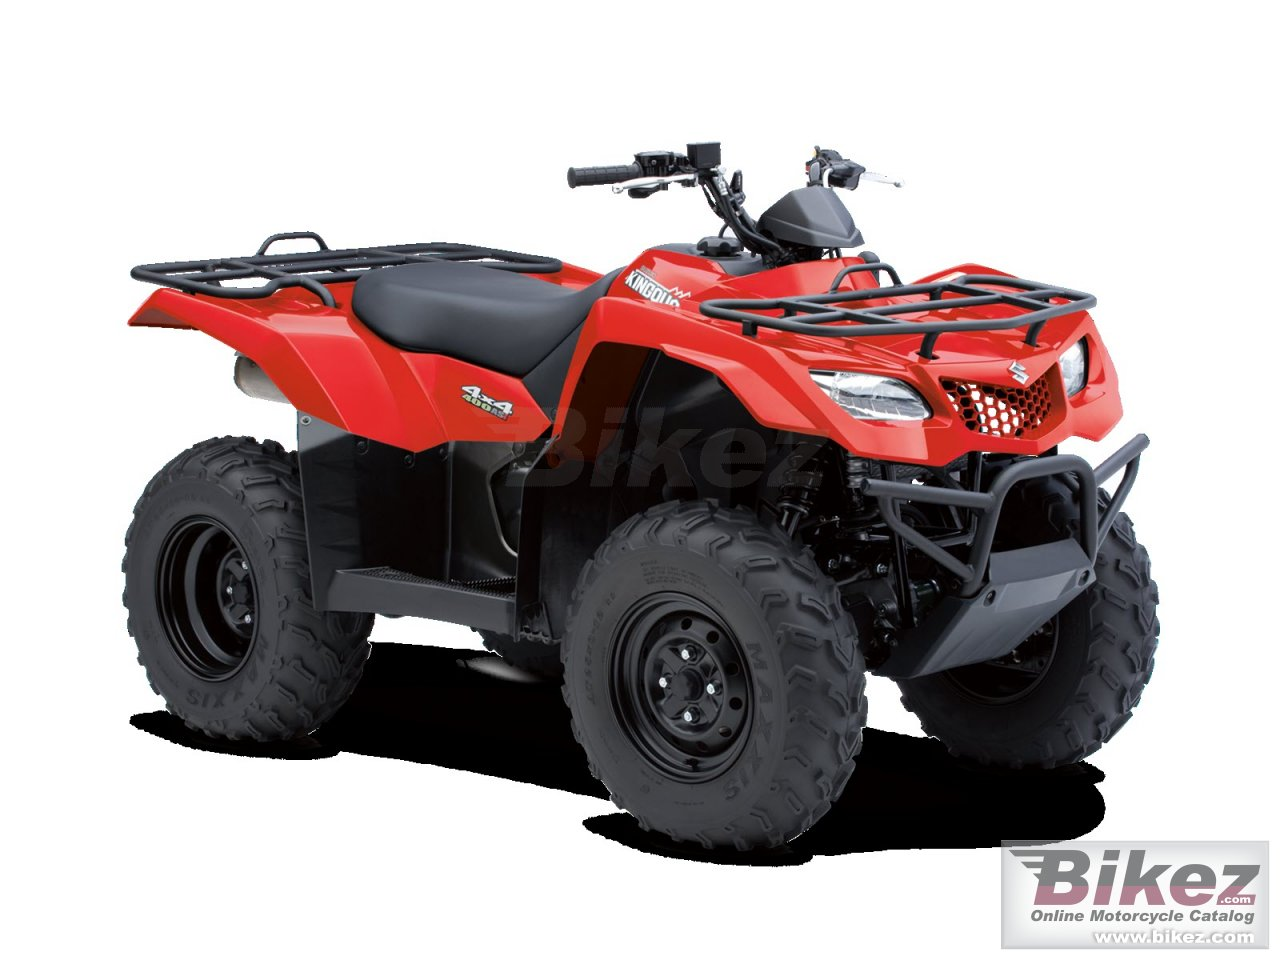 Big Suzuki kingquad 400asi picture and wallpaper from Bikez.com